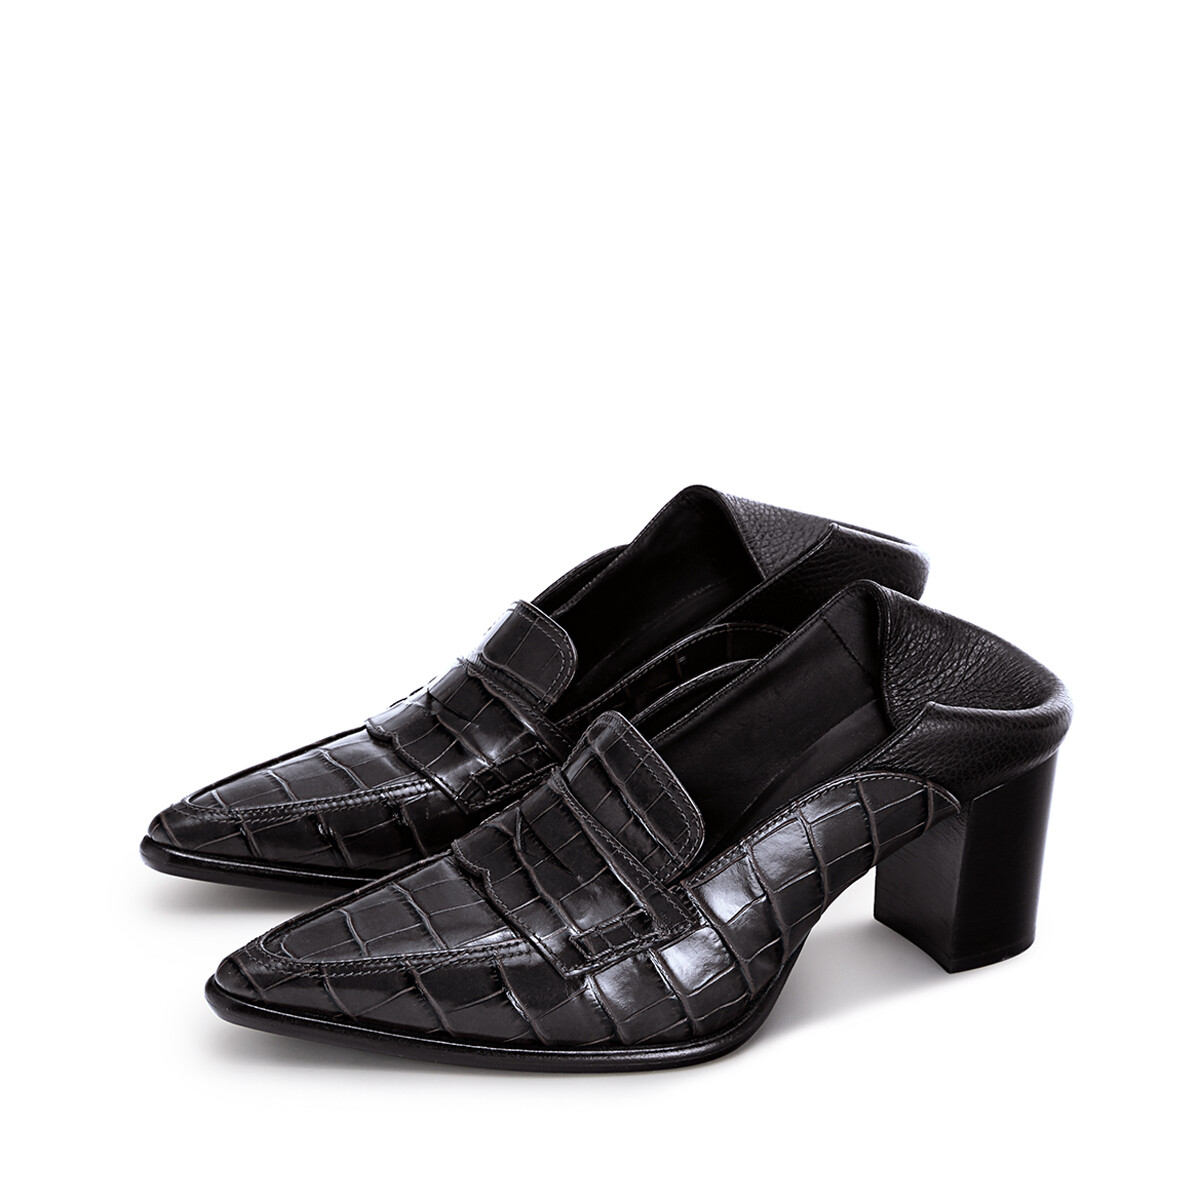 LOEWE Pointy Loafer 70 黑色/黑色 front